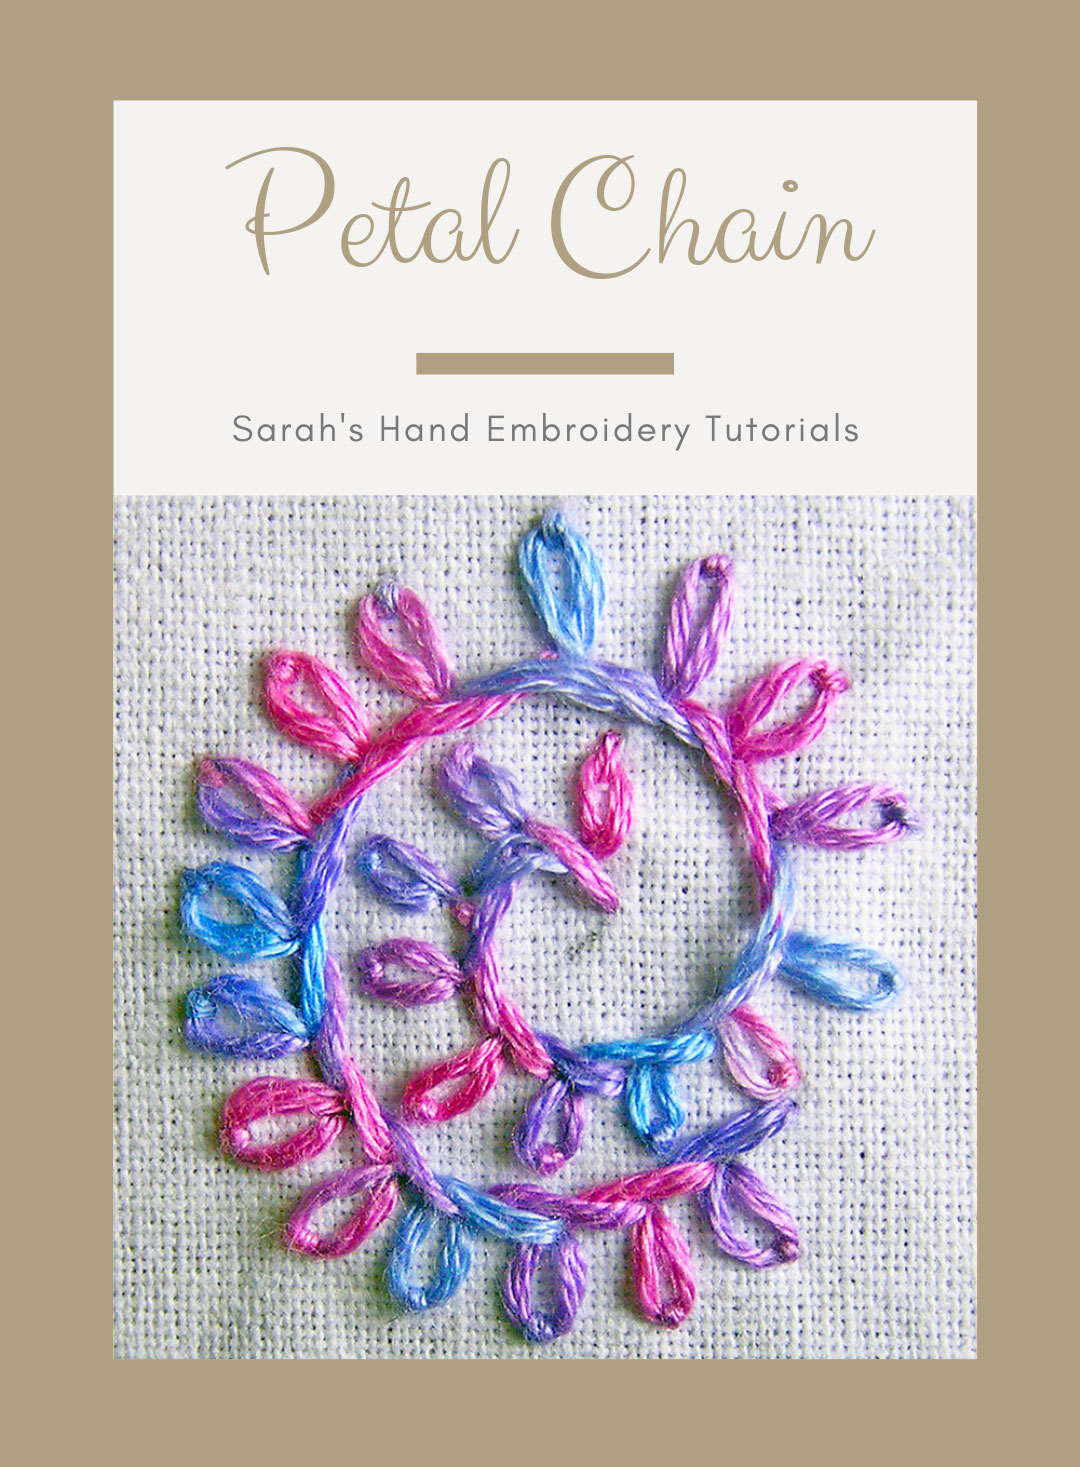 How To Do Petal Chain Stitch Sarah S Hand Embroidery Tutorials